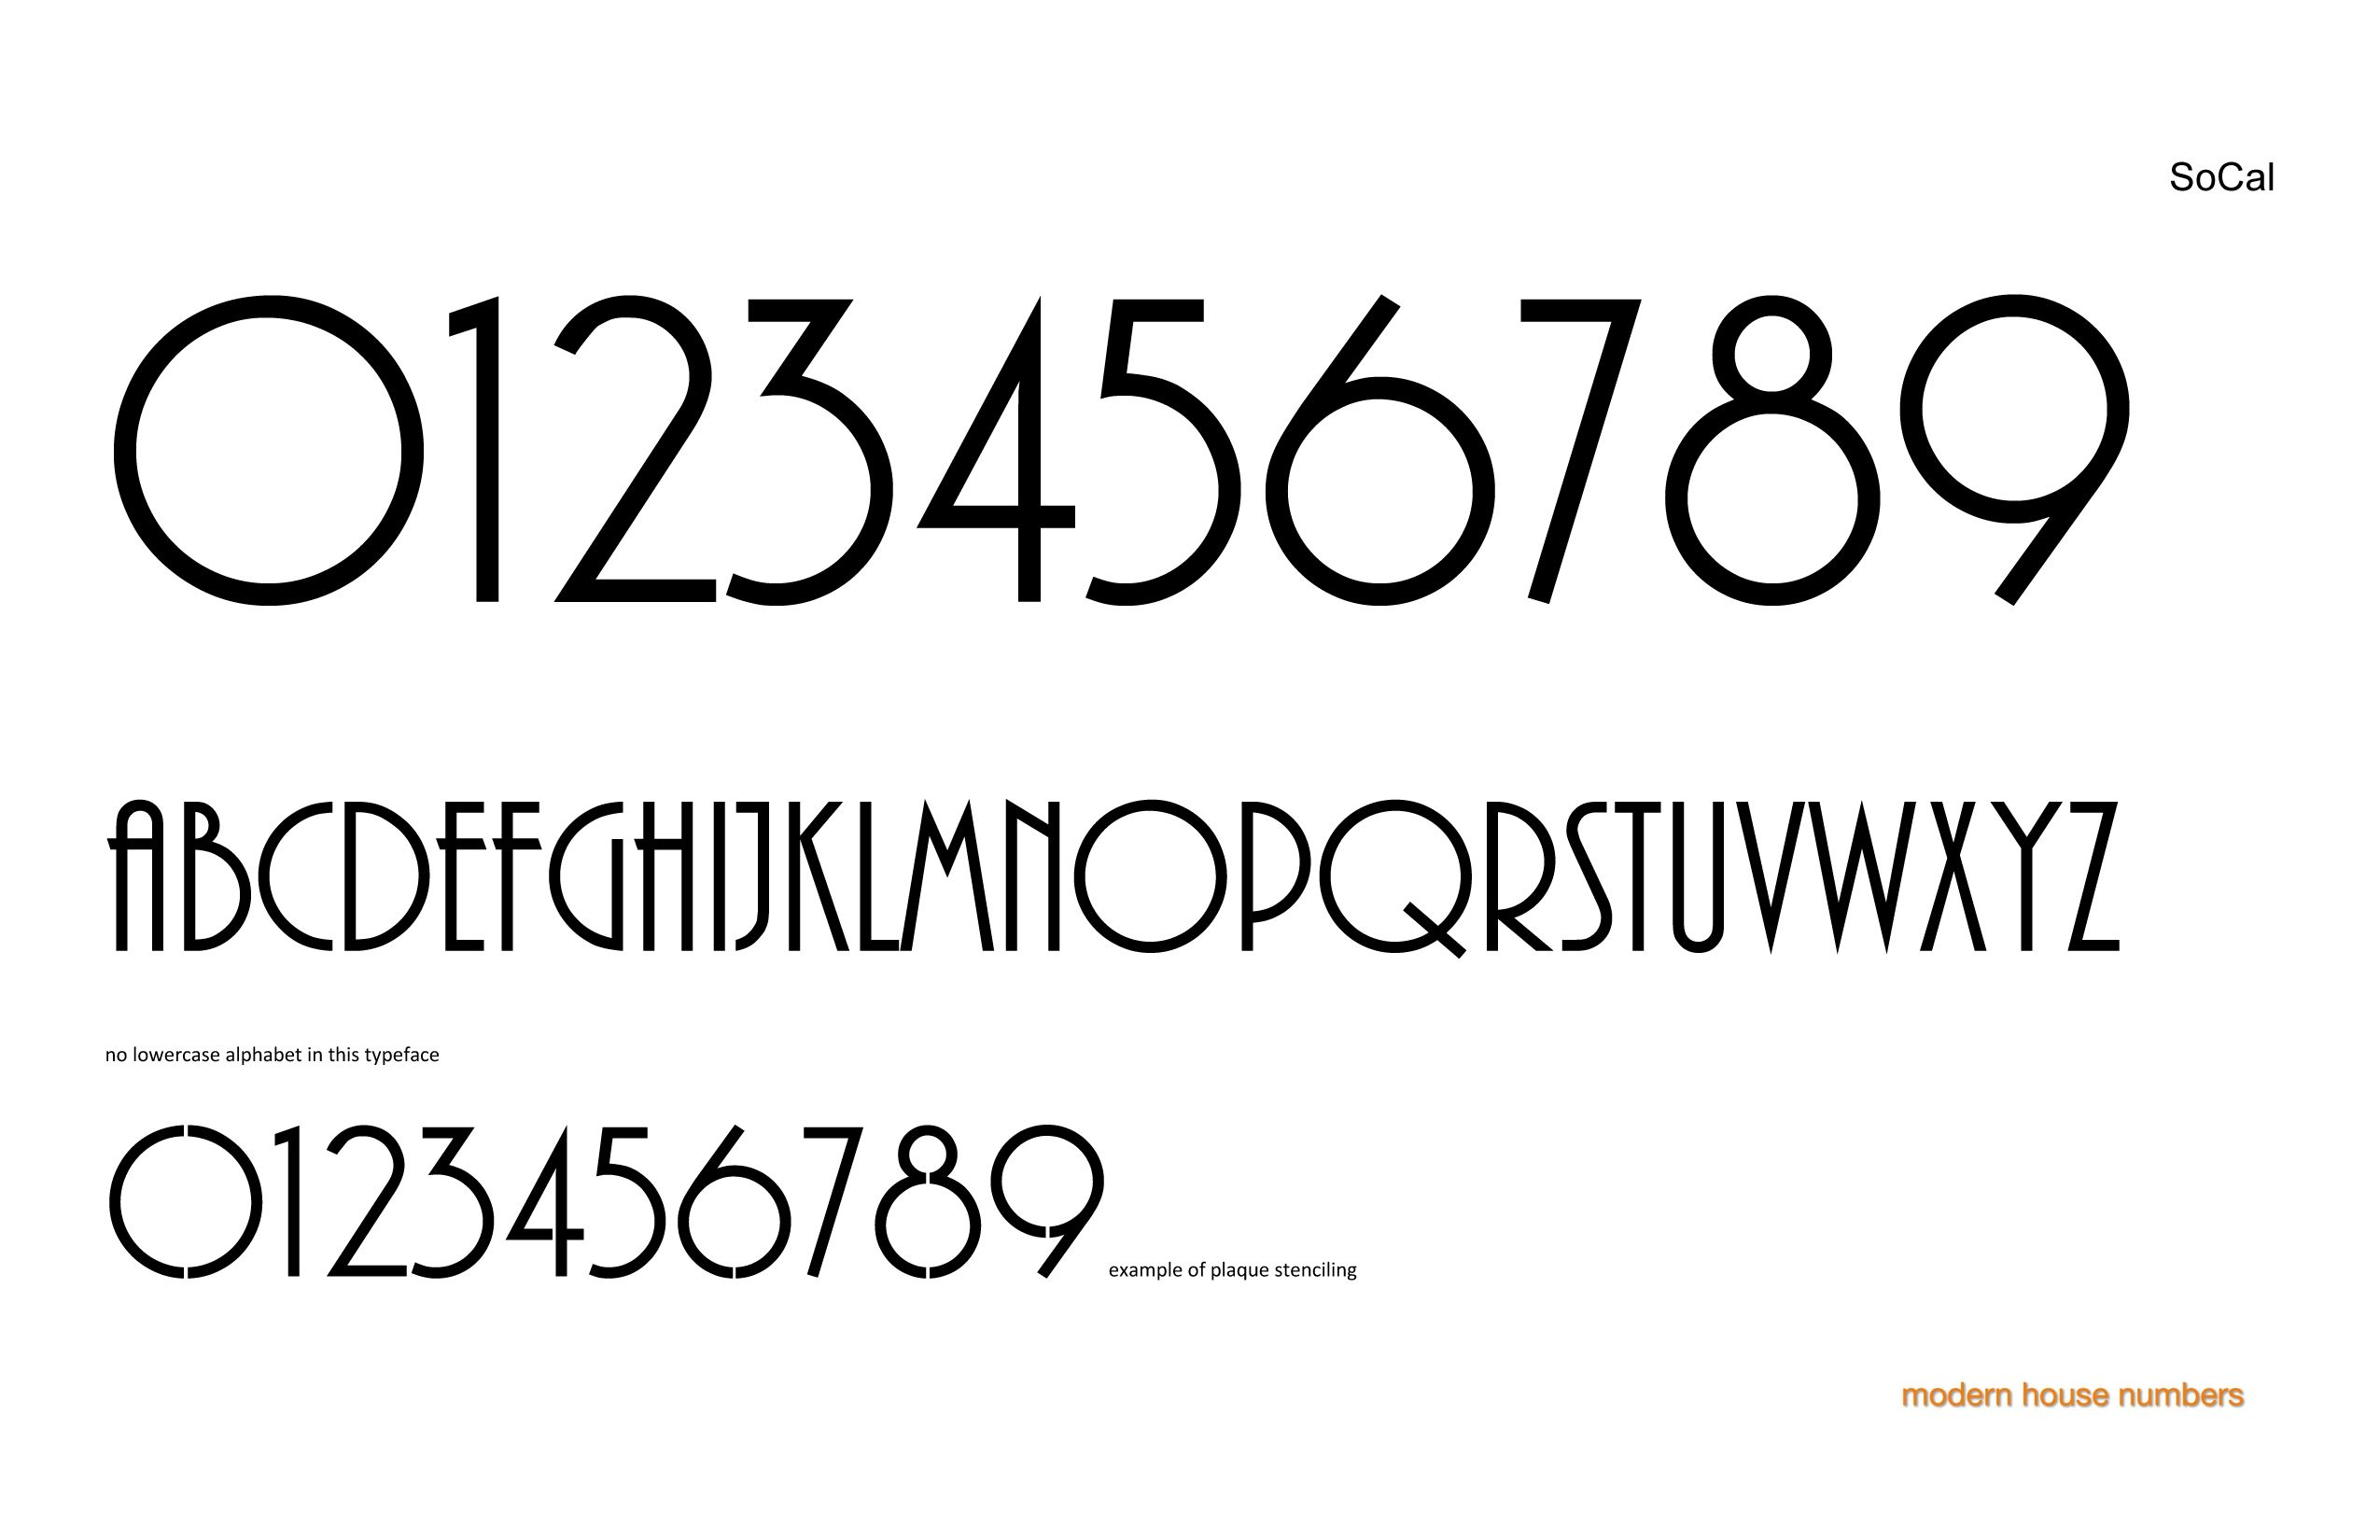 Check out our modern house numbers socal font www modernhousenumbers com